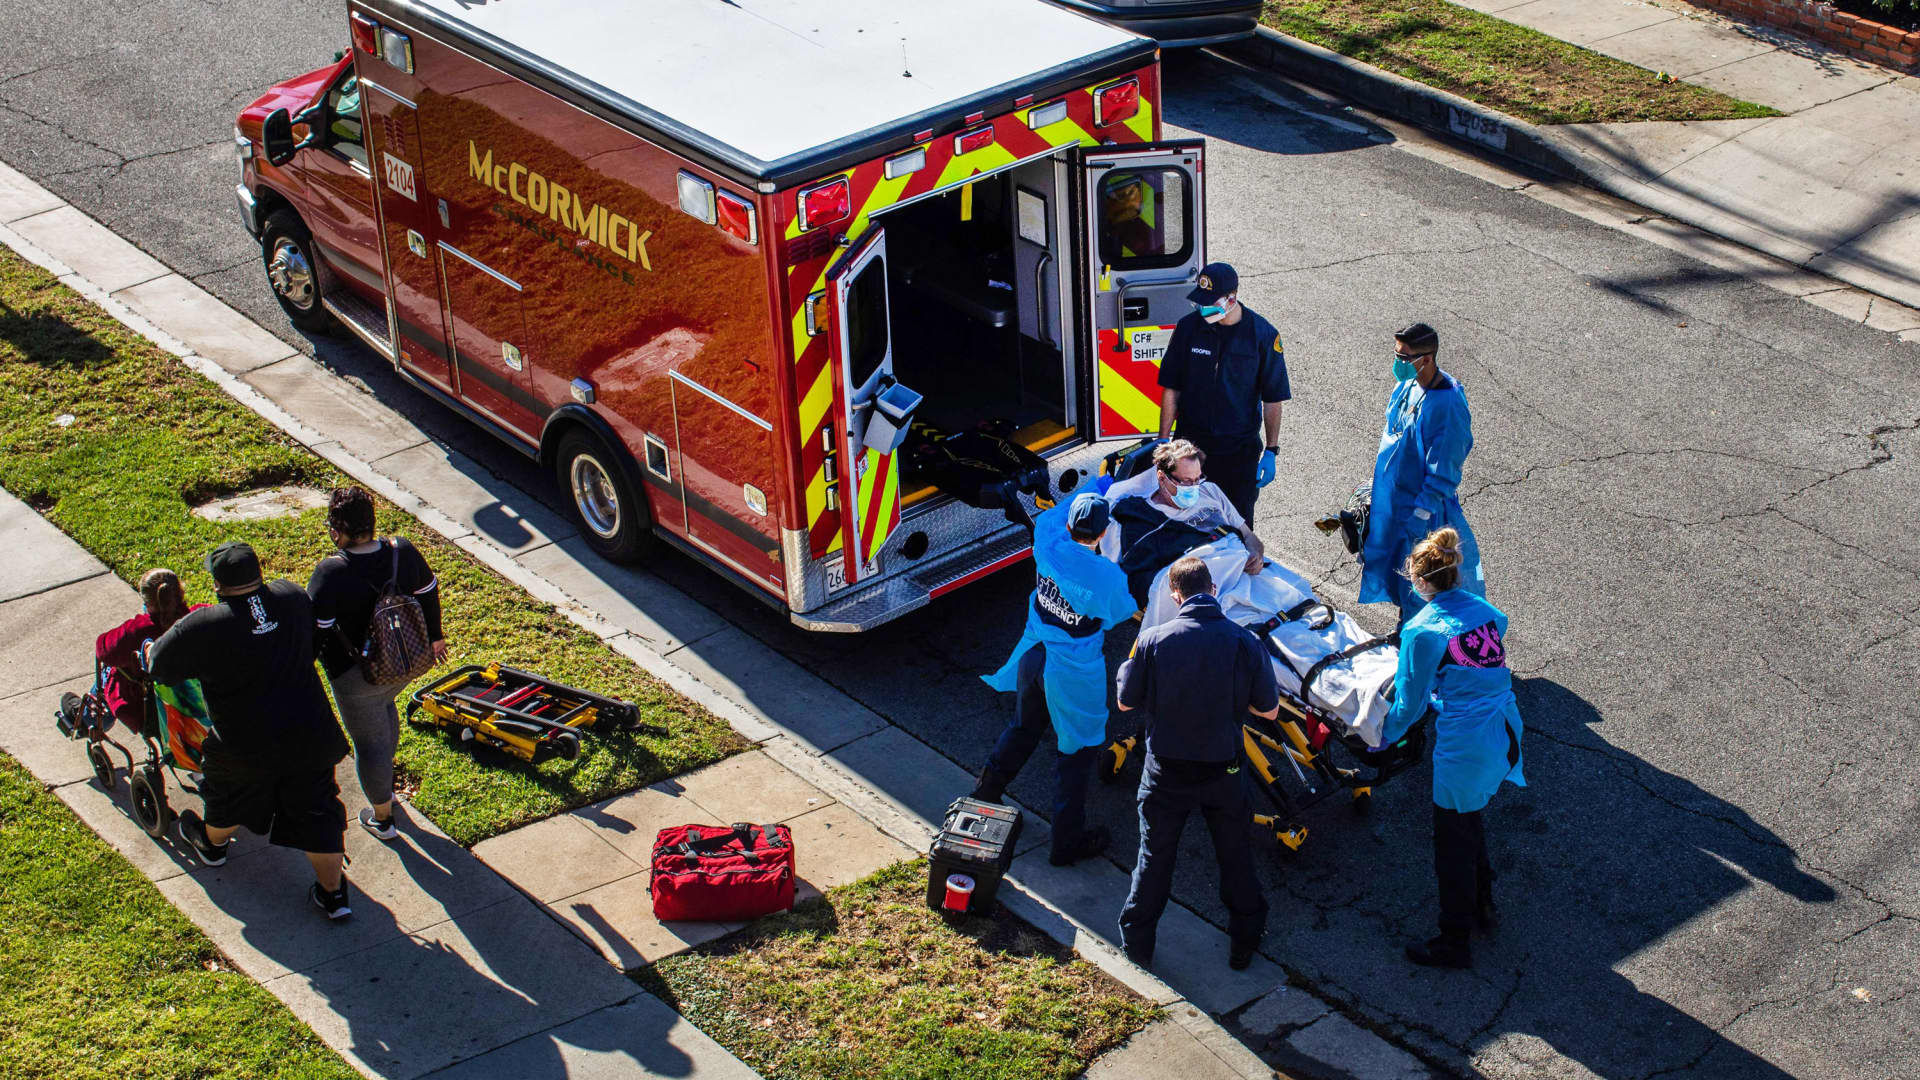 After administering him with oxygen, County of Los Angeles paramedics load a potential Covid-19 patient in the ambulance before transporting him to a hospital in Hawthorne, California on December 29, 2020 as a family walks by.